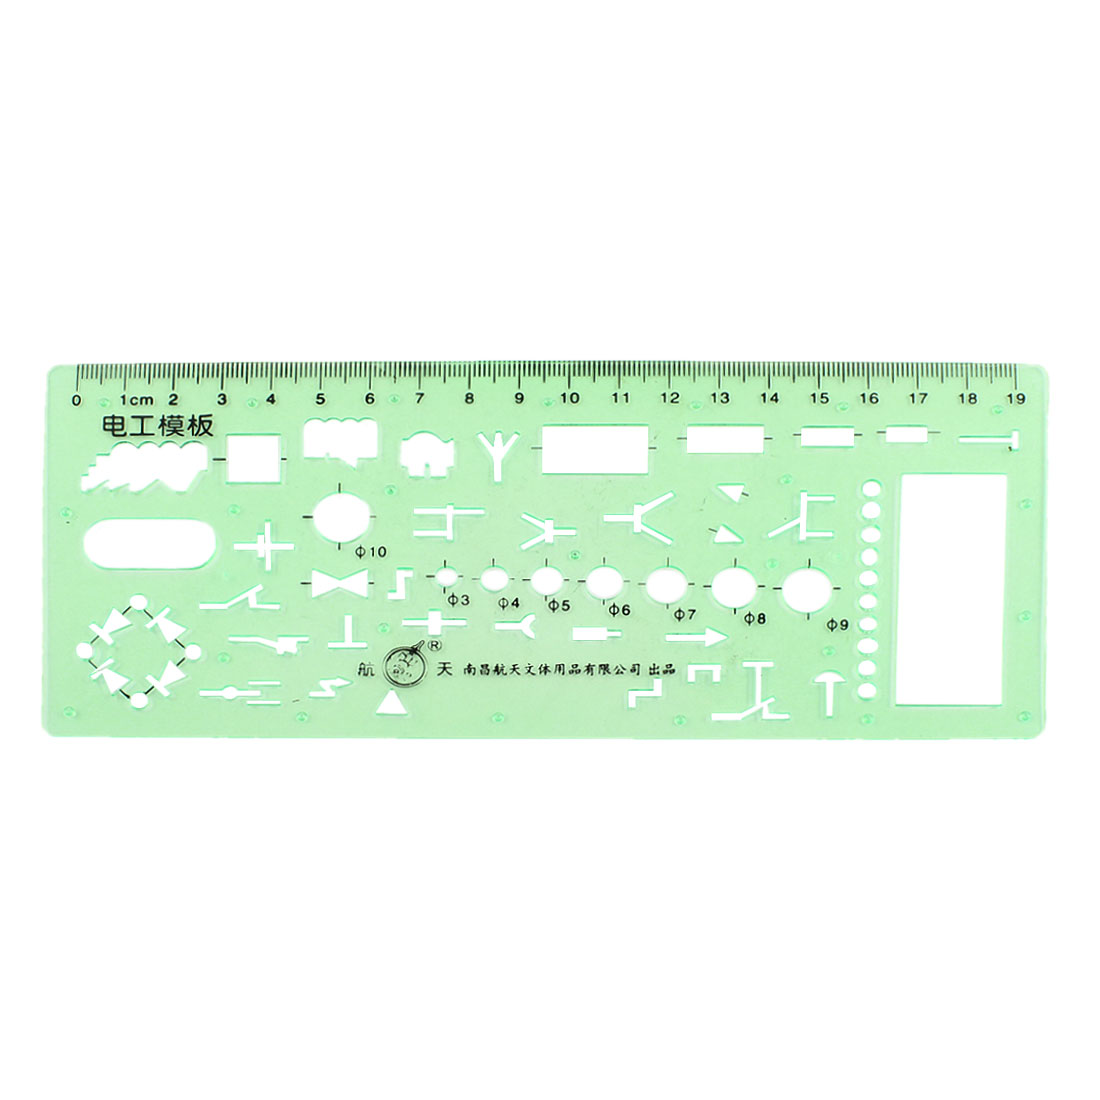 Green Plastic Stationery Computer Diagrammer Electrican Template Ruler 0-19cm Measurement